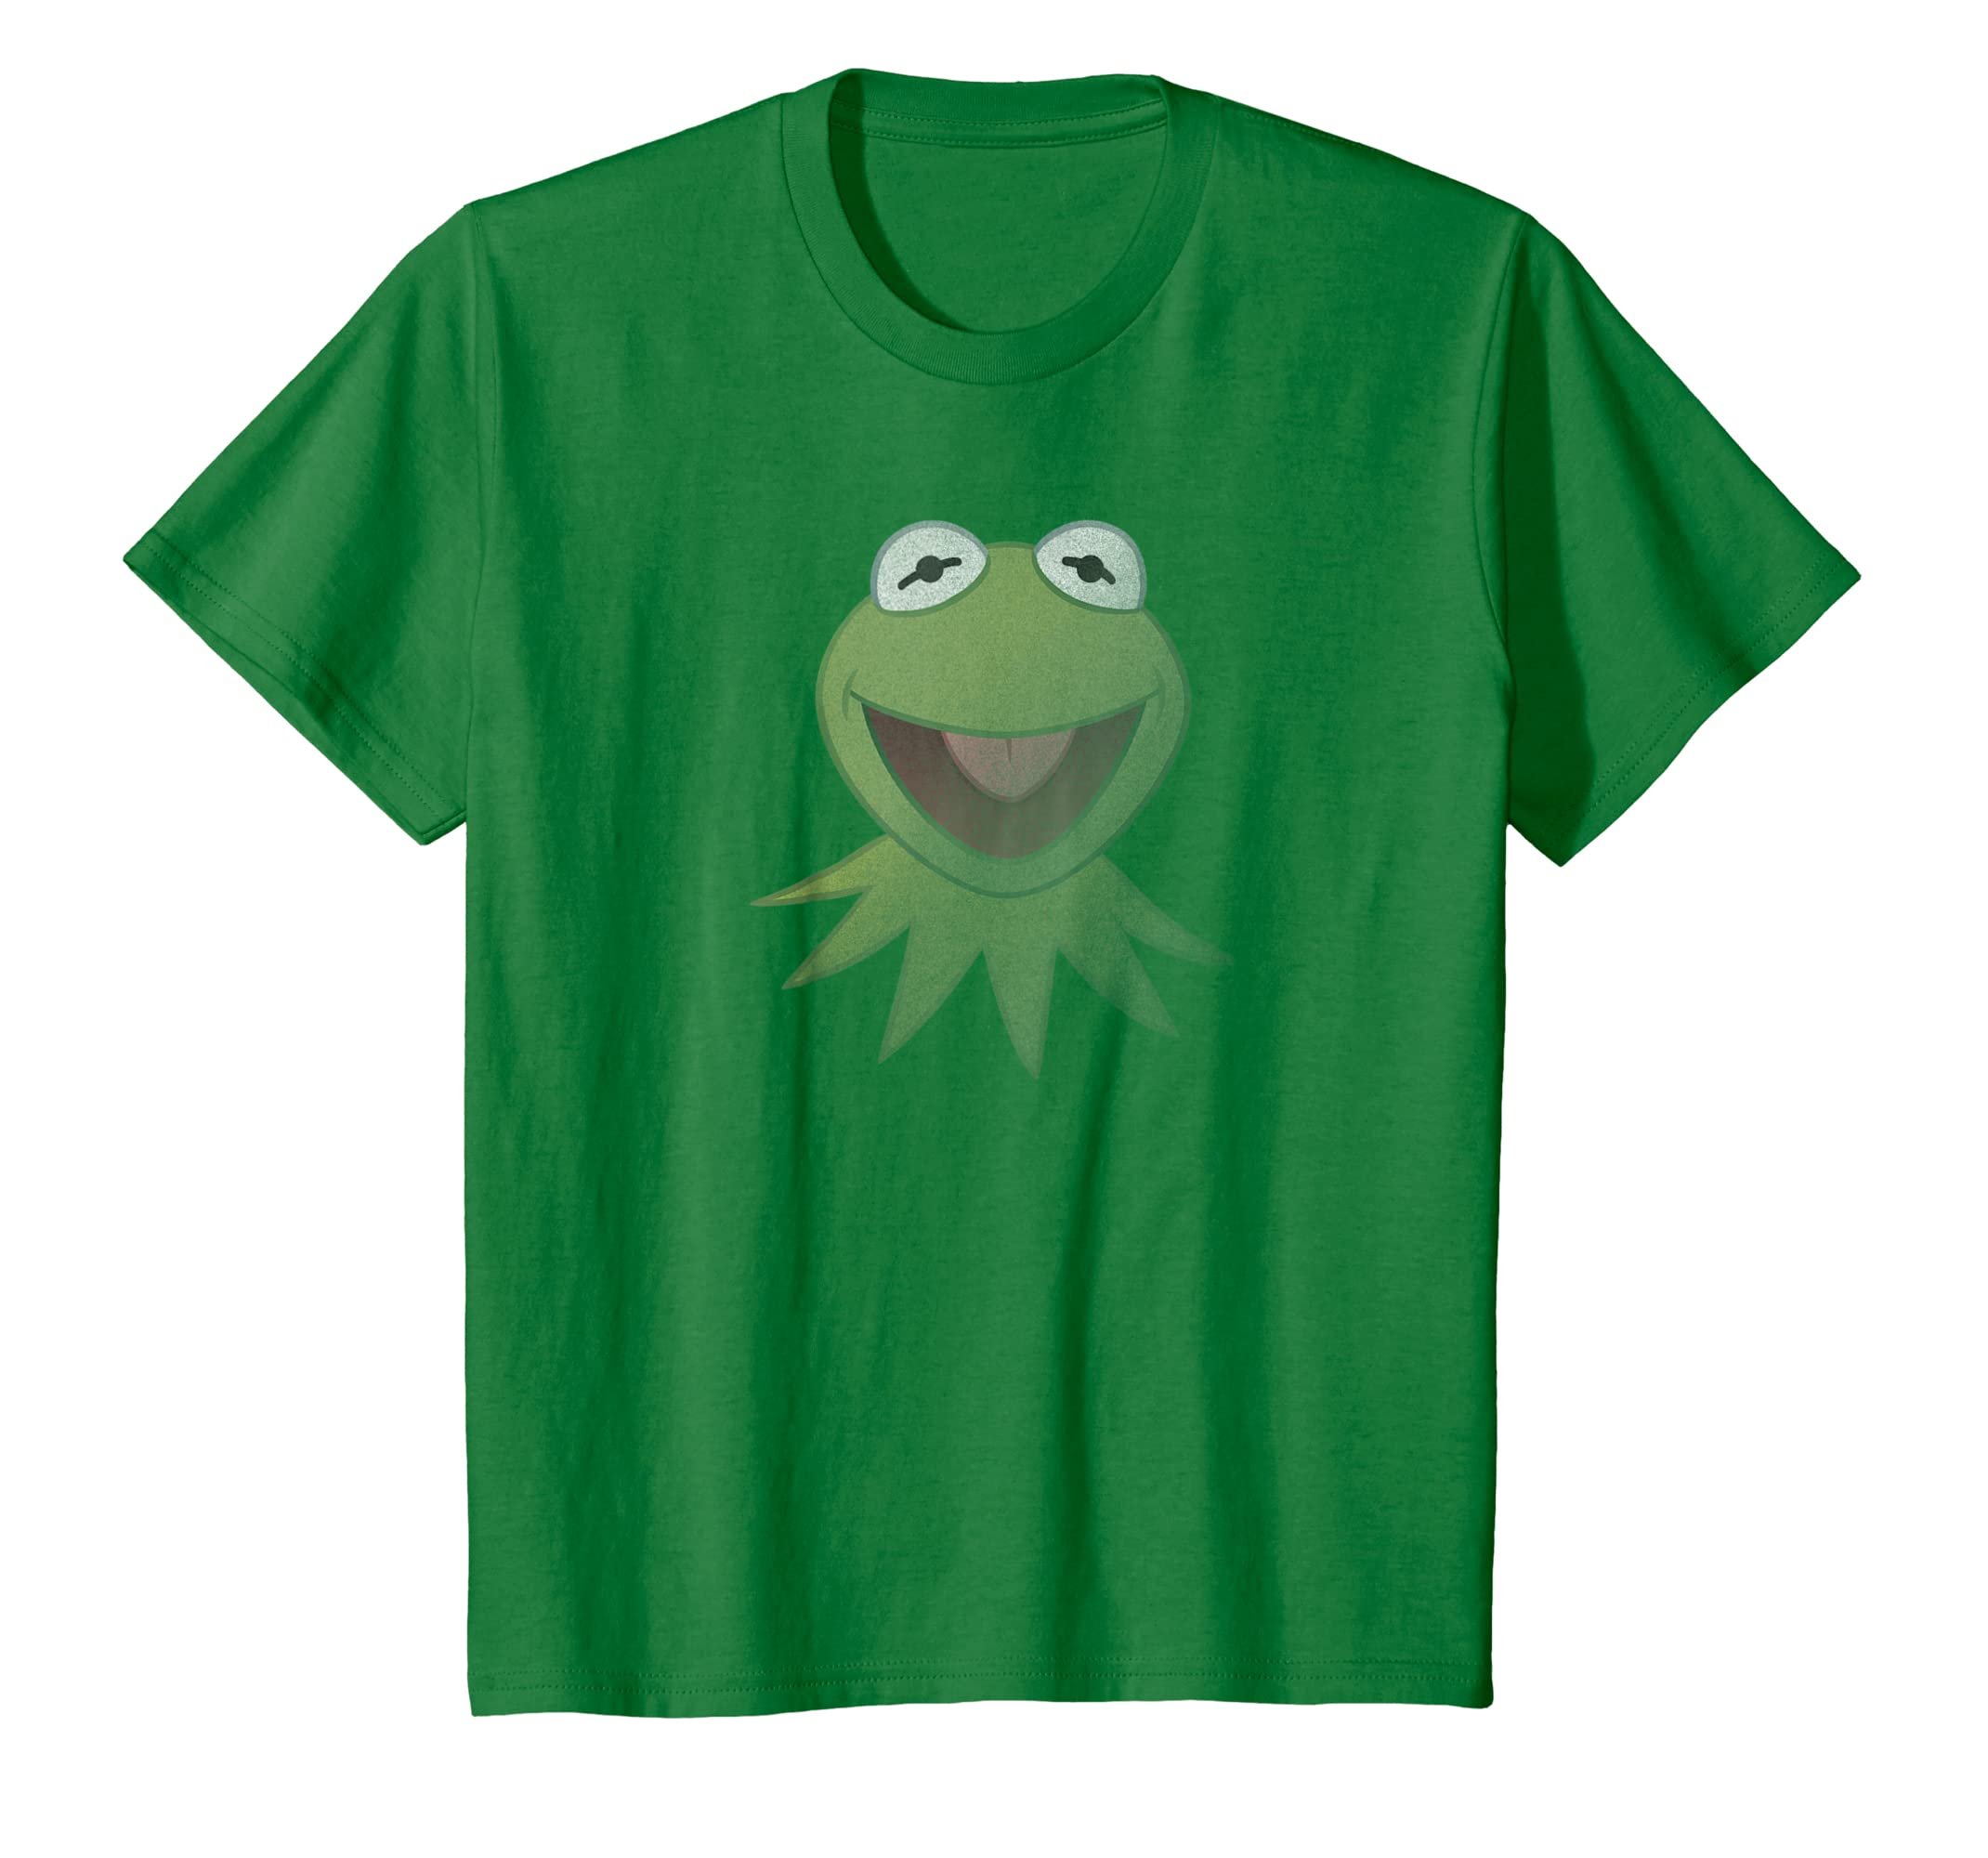 db60ed02babb6 Amazon.com  Disney Muppets Kermit the Frog Face T-Shirt  Clothing